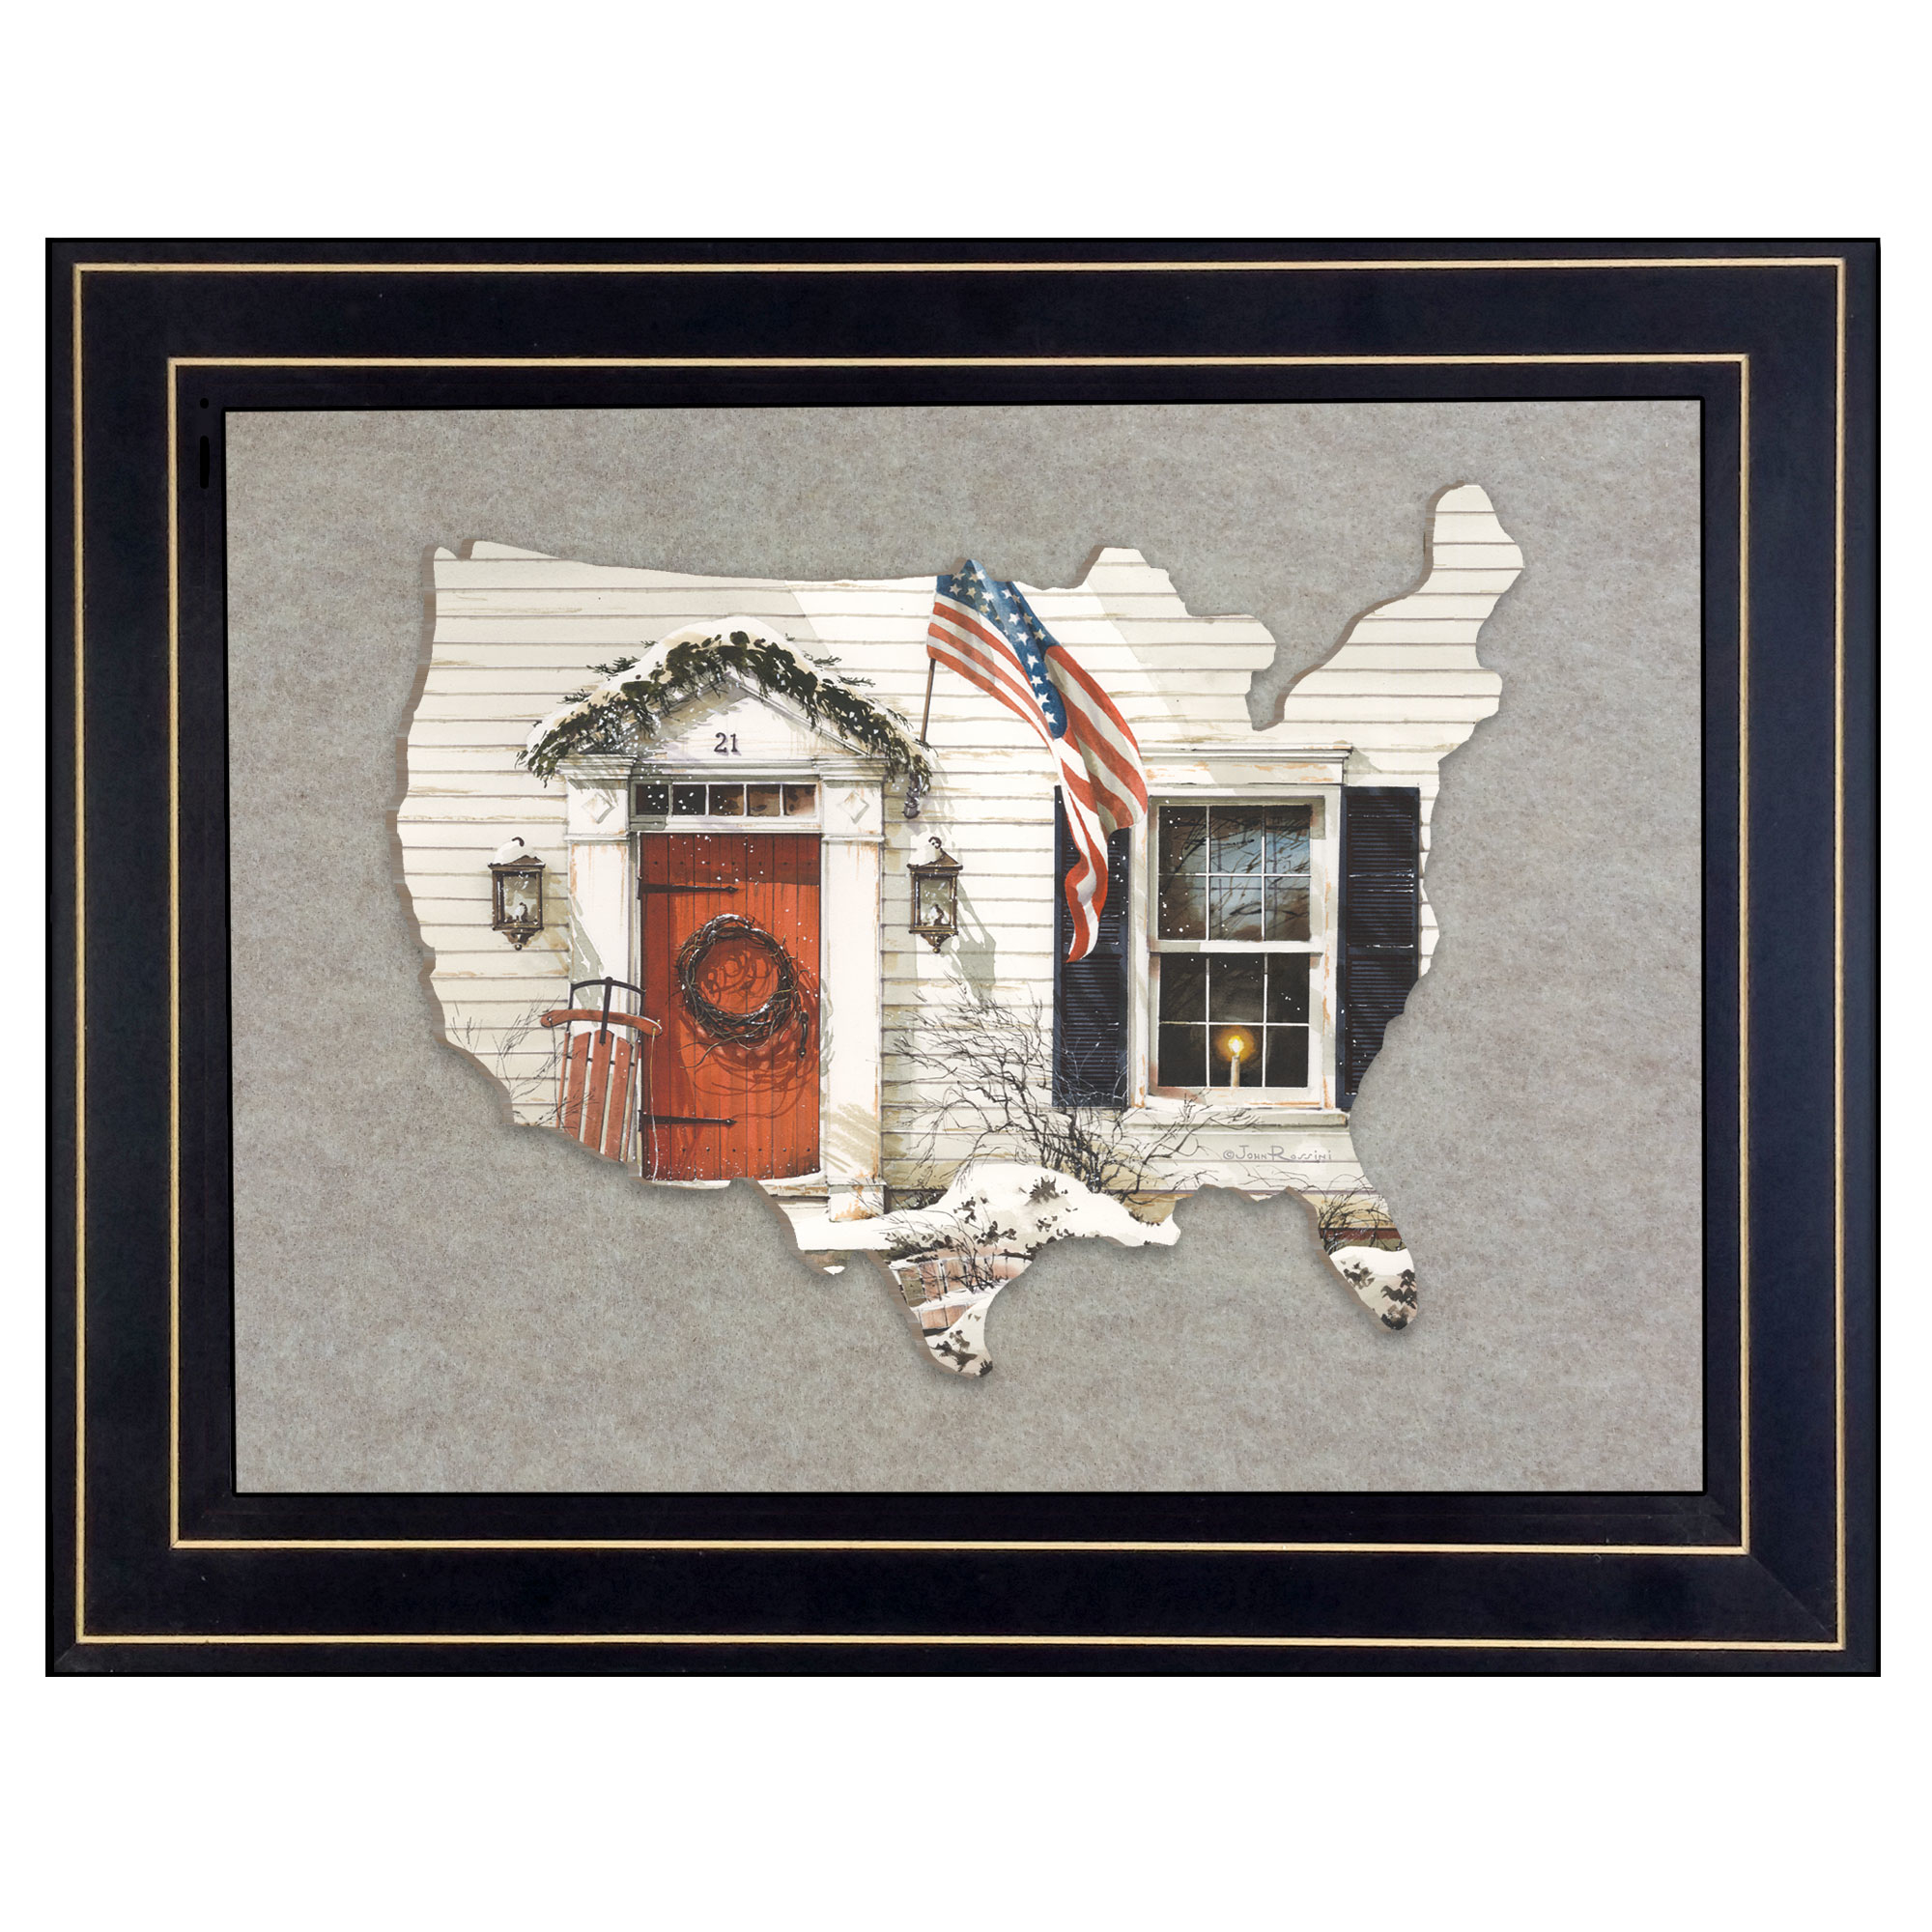 Jr177Usa-E-704G 21 Main Street, by artisan John Rossini, 3D framed art printed directly on wood in the shape of the United States, then mounted on a sand color felt background, in an attractive 19 x 15 black frame. Framed cutout of the outside of a farm house in the winter; sled beside the door, garland over the door way, candle in the window, wreath on the door, and the American flag flying high. Arrives ready to hang. Made in the USA by skilled American workers. * Textured Artwork with a 'rolled on' acid-free acrylic coating to create a canvas painting effect. * UV Protectant Coating protects artwork from fading. No glass is necessary. * Moulding adds natural beauty to the framed art. Frame is keyholed for the easy hanging. * This Fine Home Decor piece made in the USA by Woman Owned Business (Wbe) is a perfect gift for a friend or relative. *